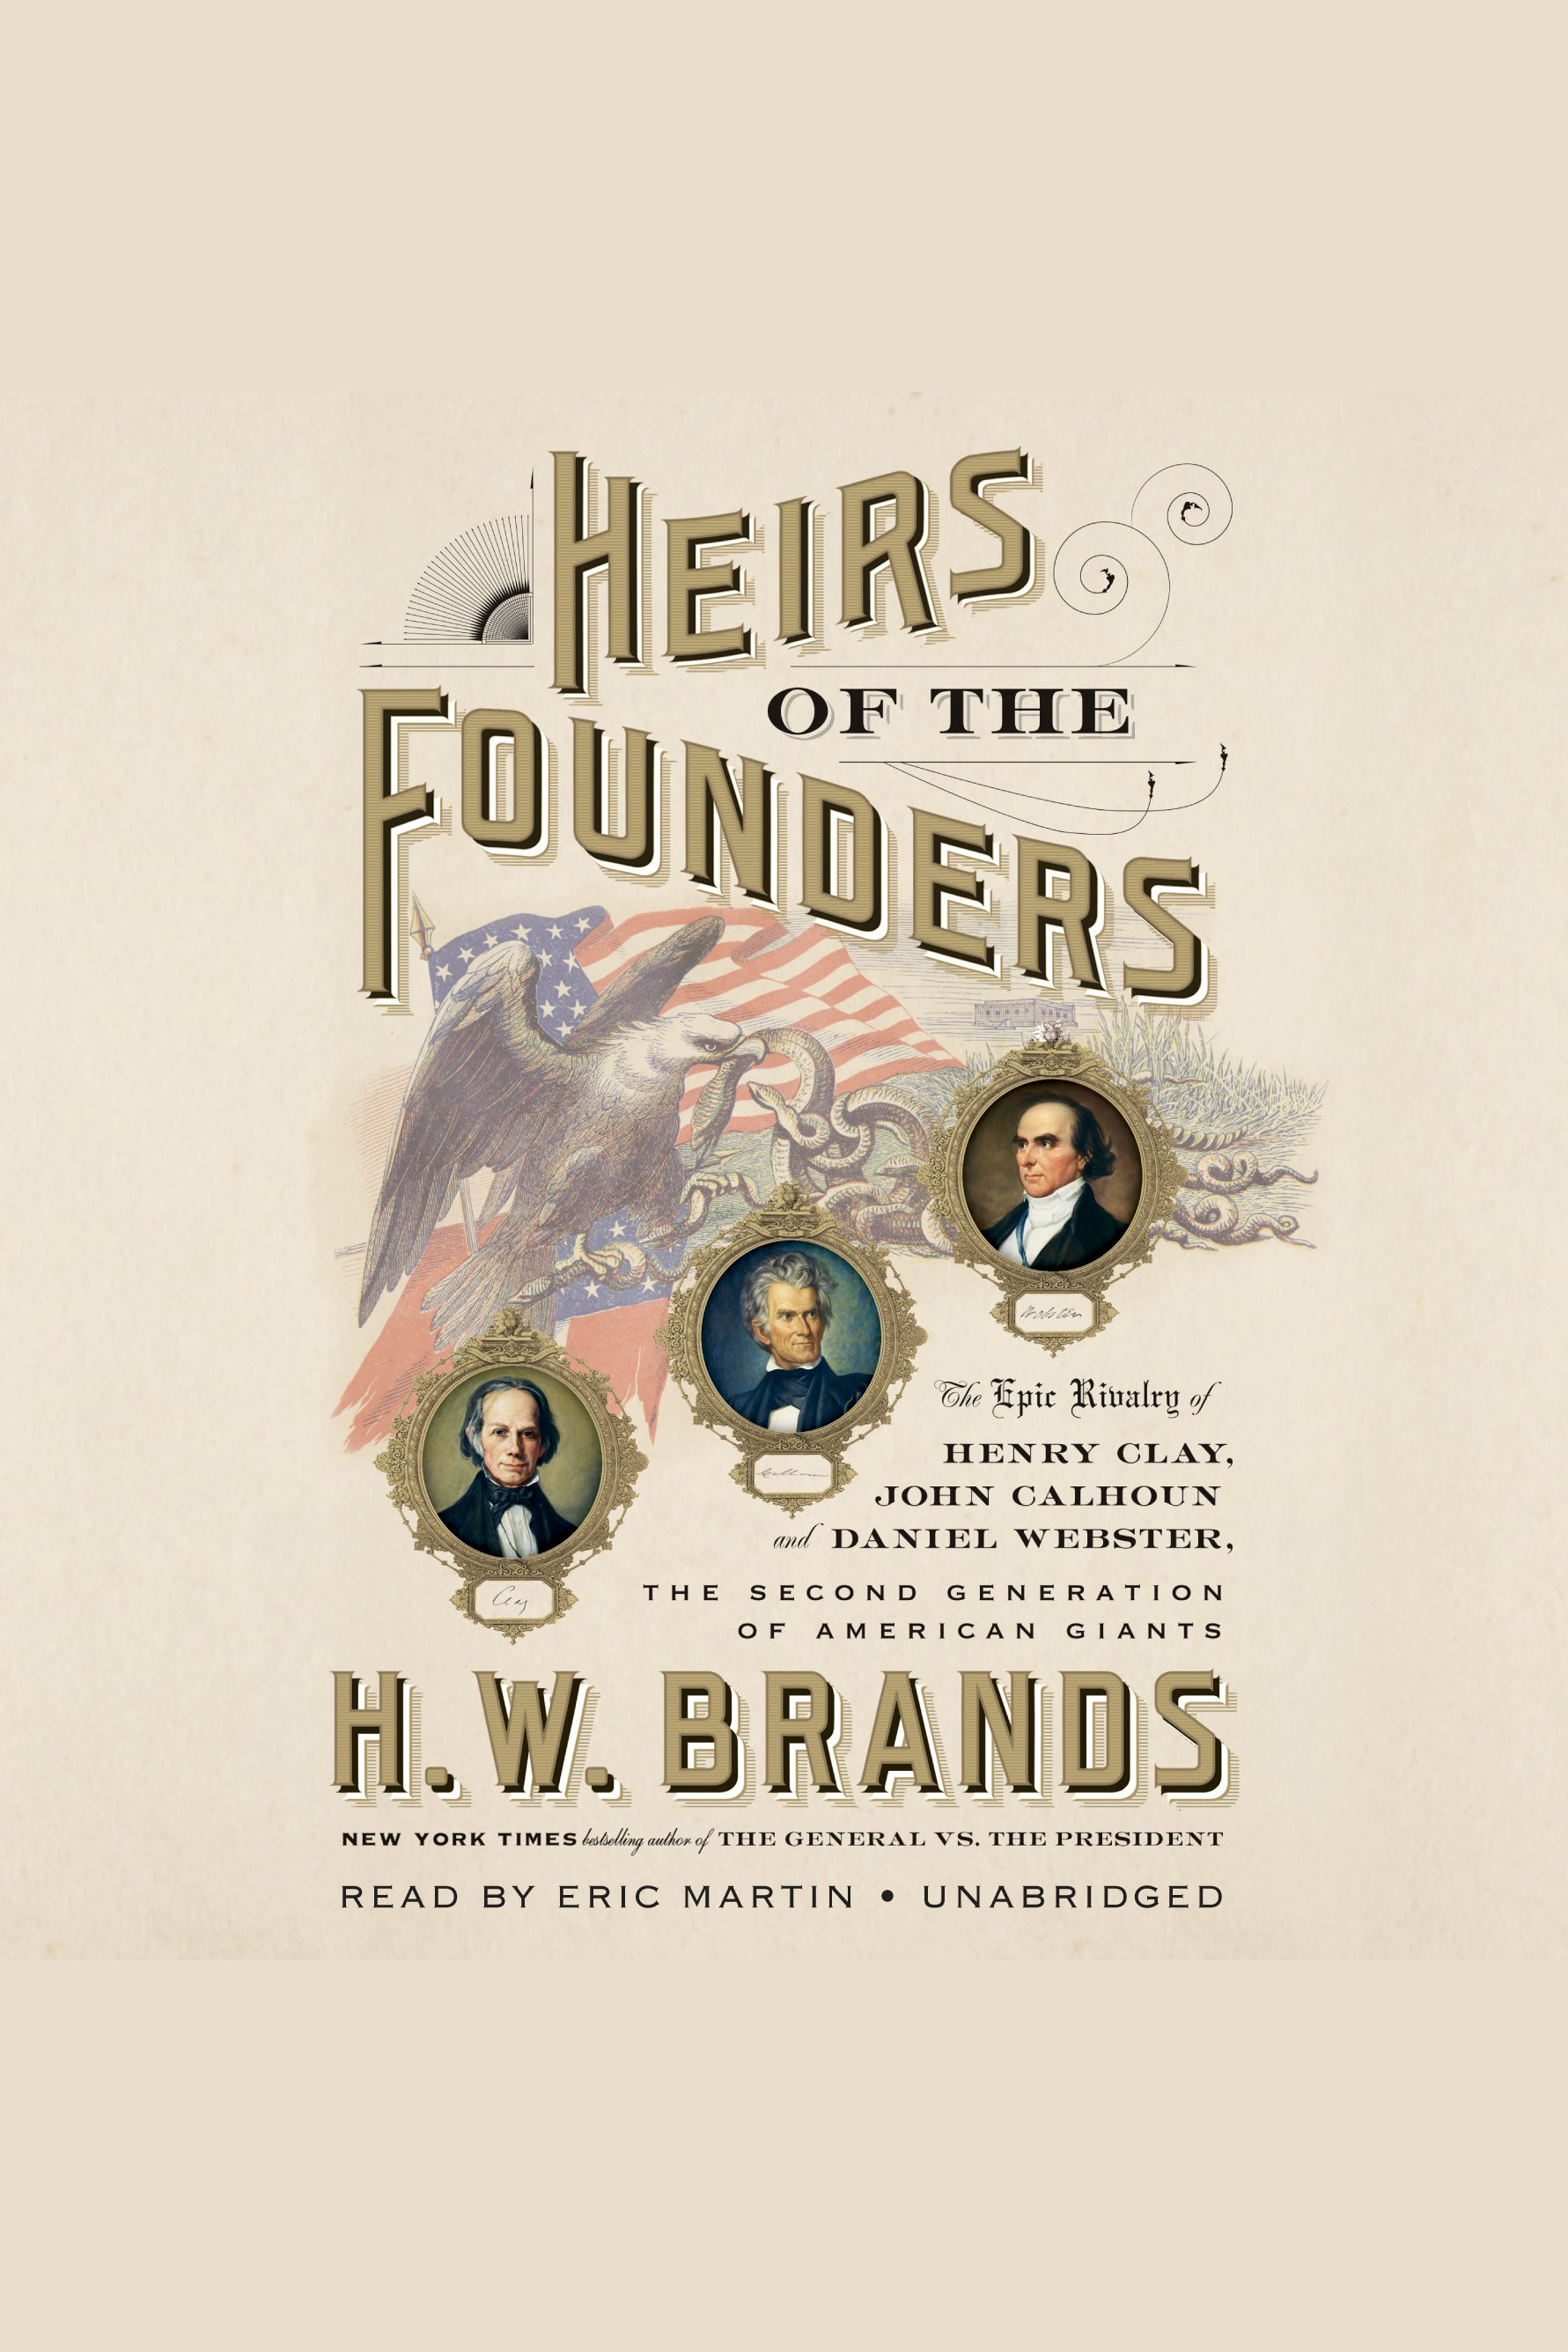 Heirs of the Founders [electronic resource] : The Epic Rivalry of Henry Clay, John Calhoun and Daniel Webster, the Second Generation of American Giants